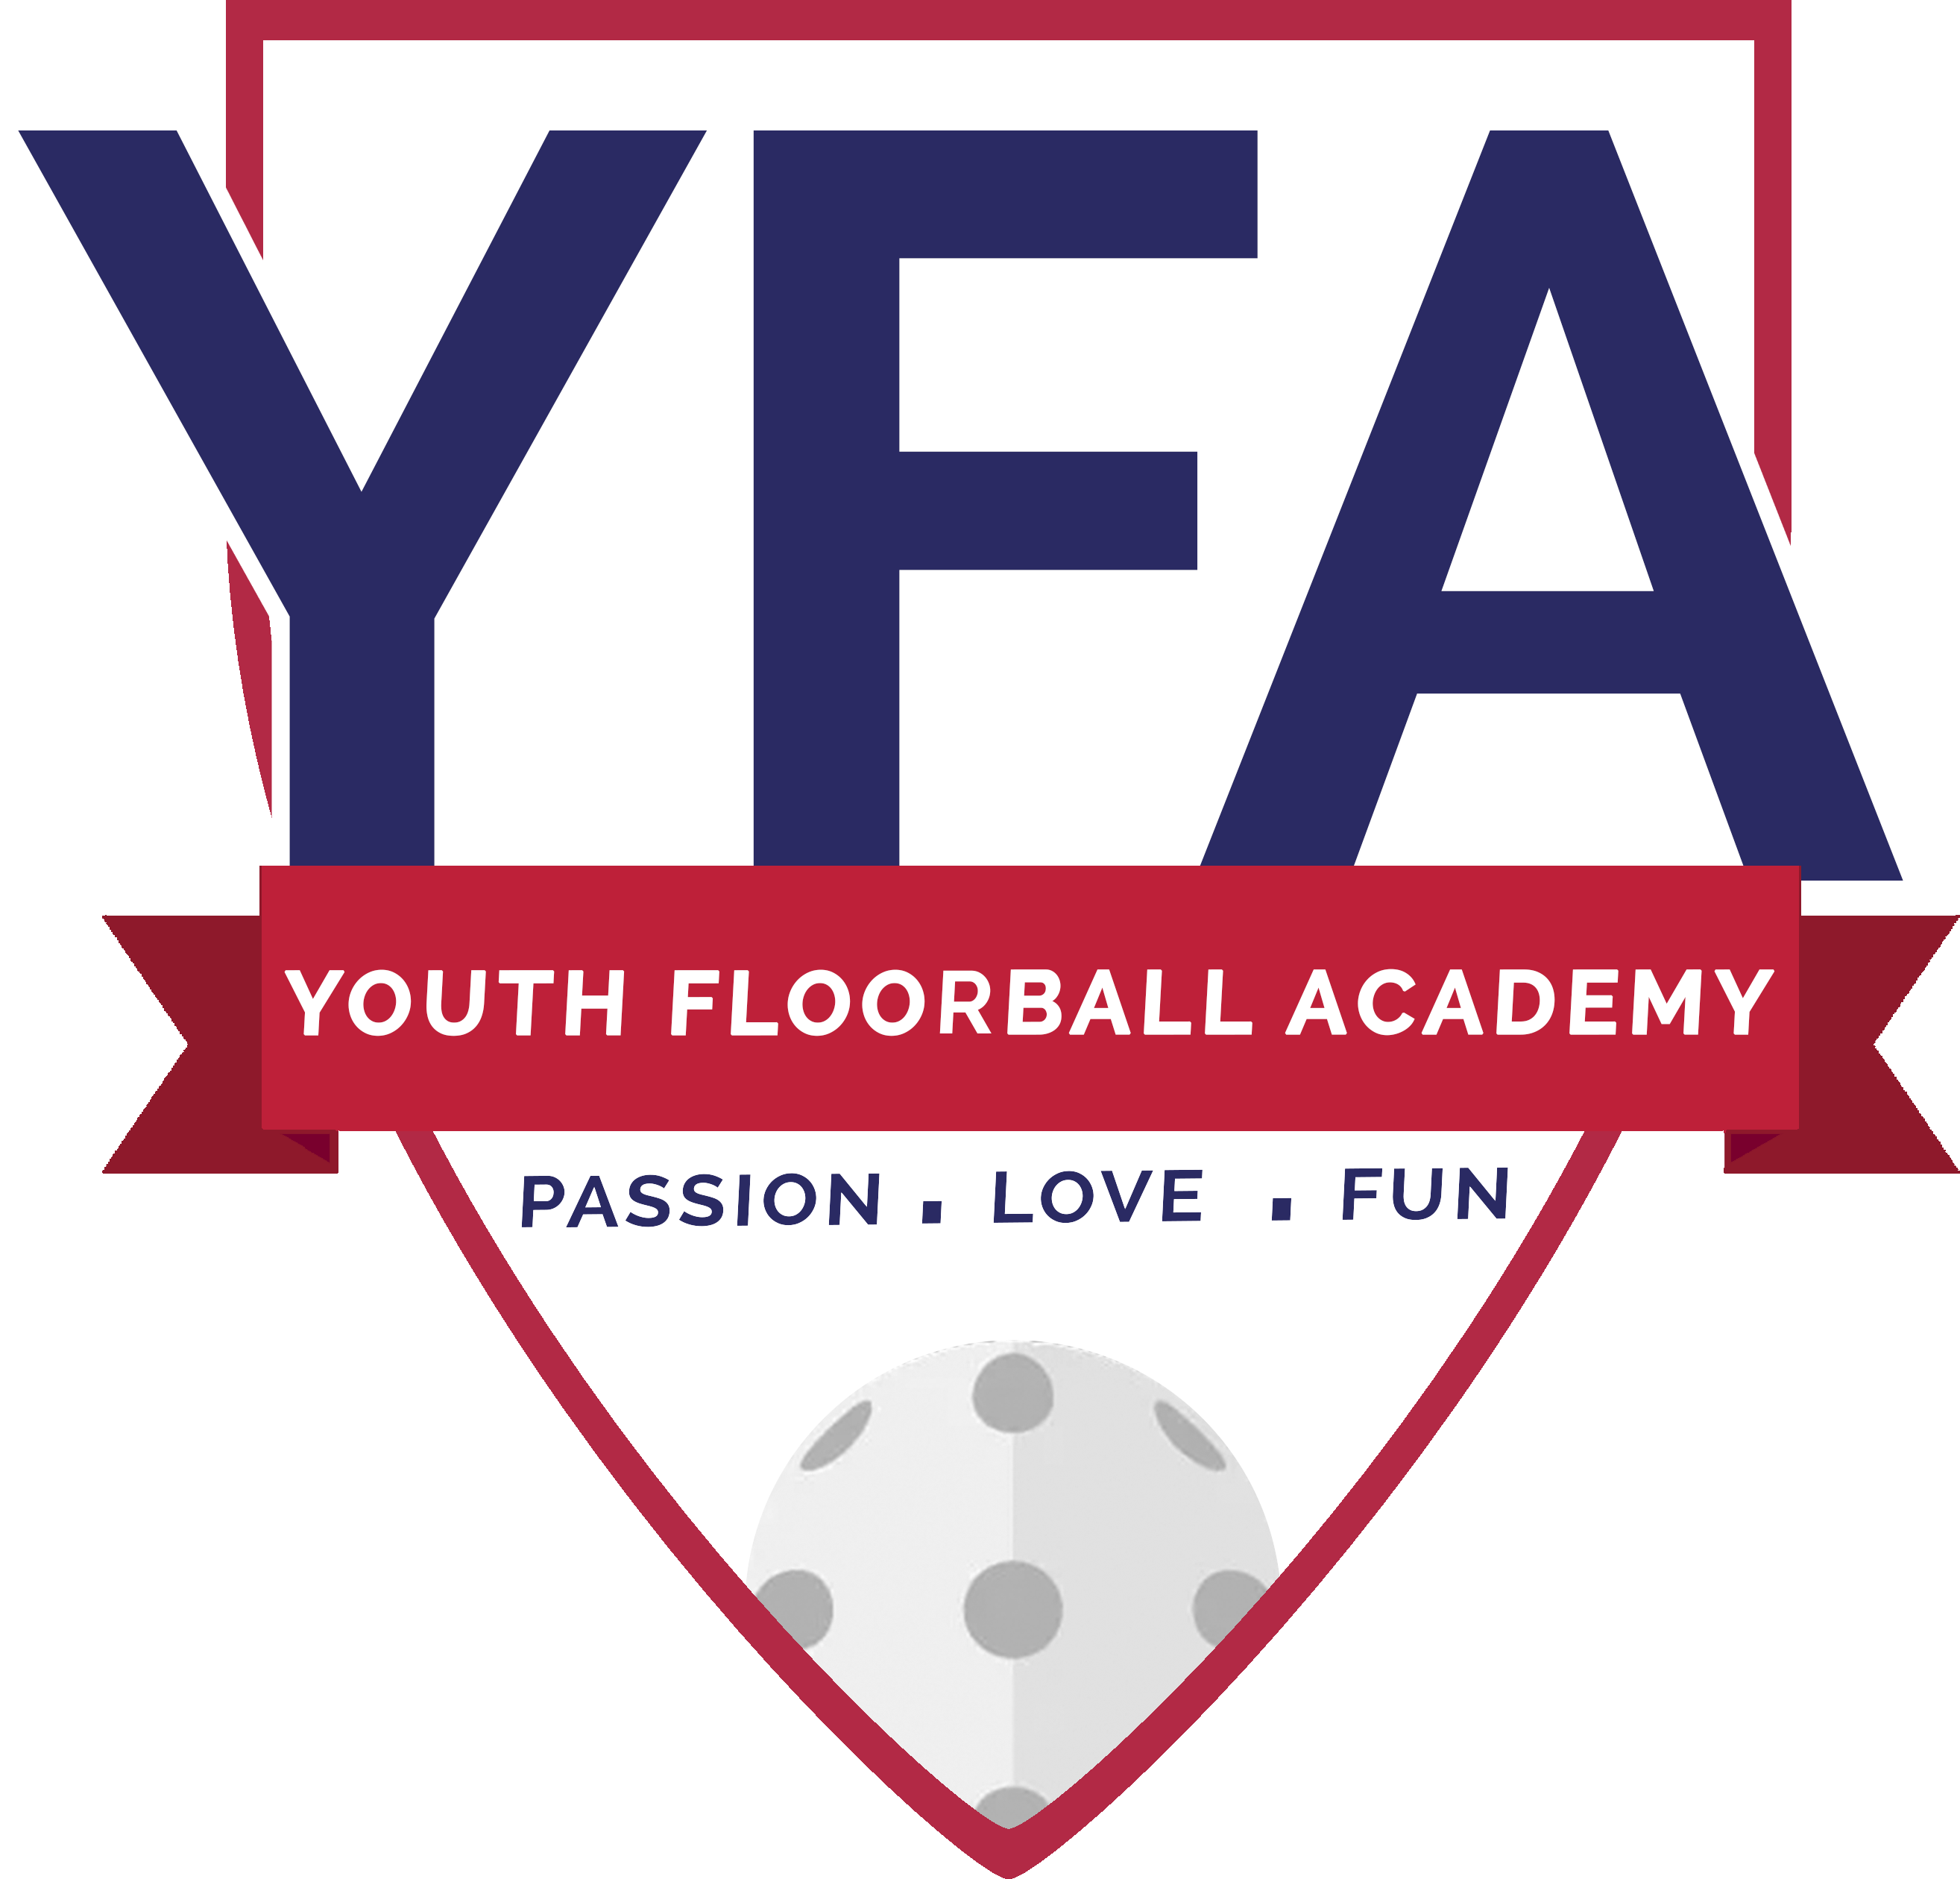 Youth Floorball Academy